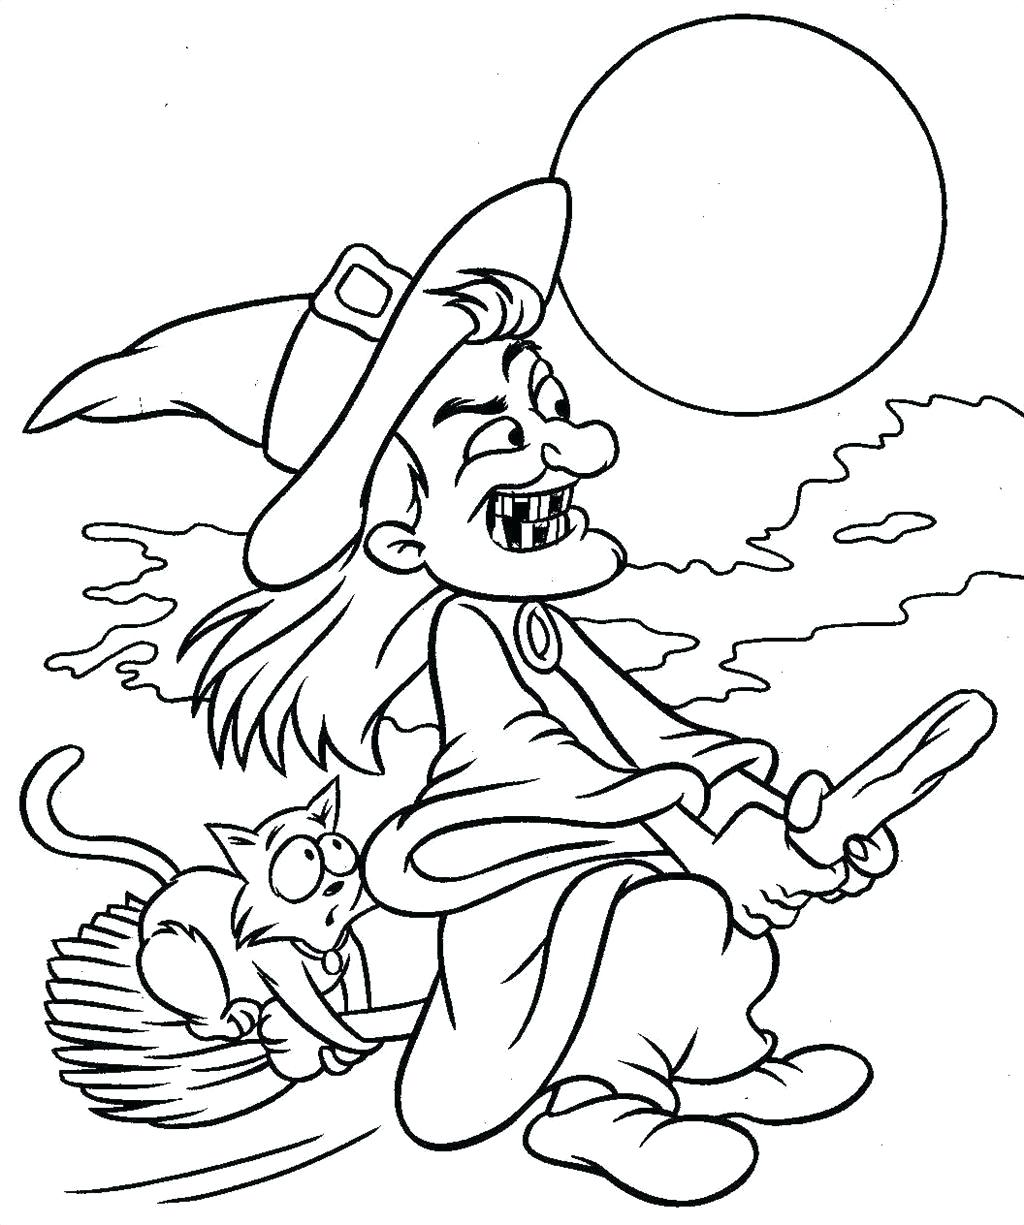 1024x1225 Coloring Scary Coloring Pages Top Witch Photo. Scary Coloring Pages